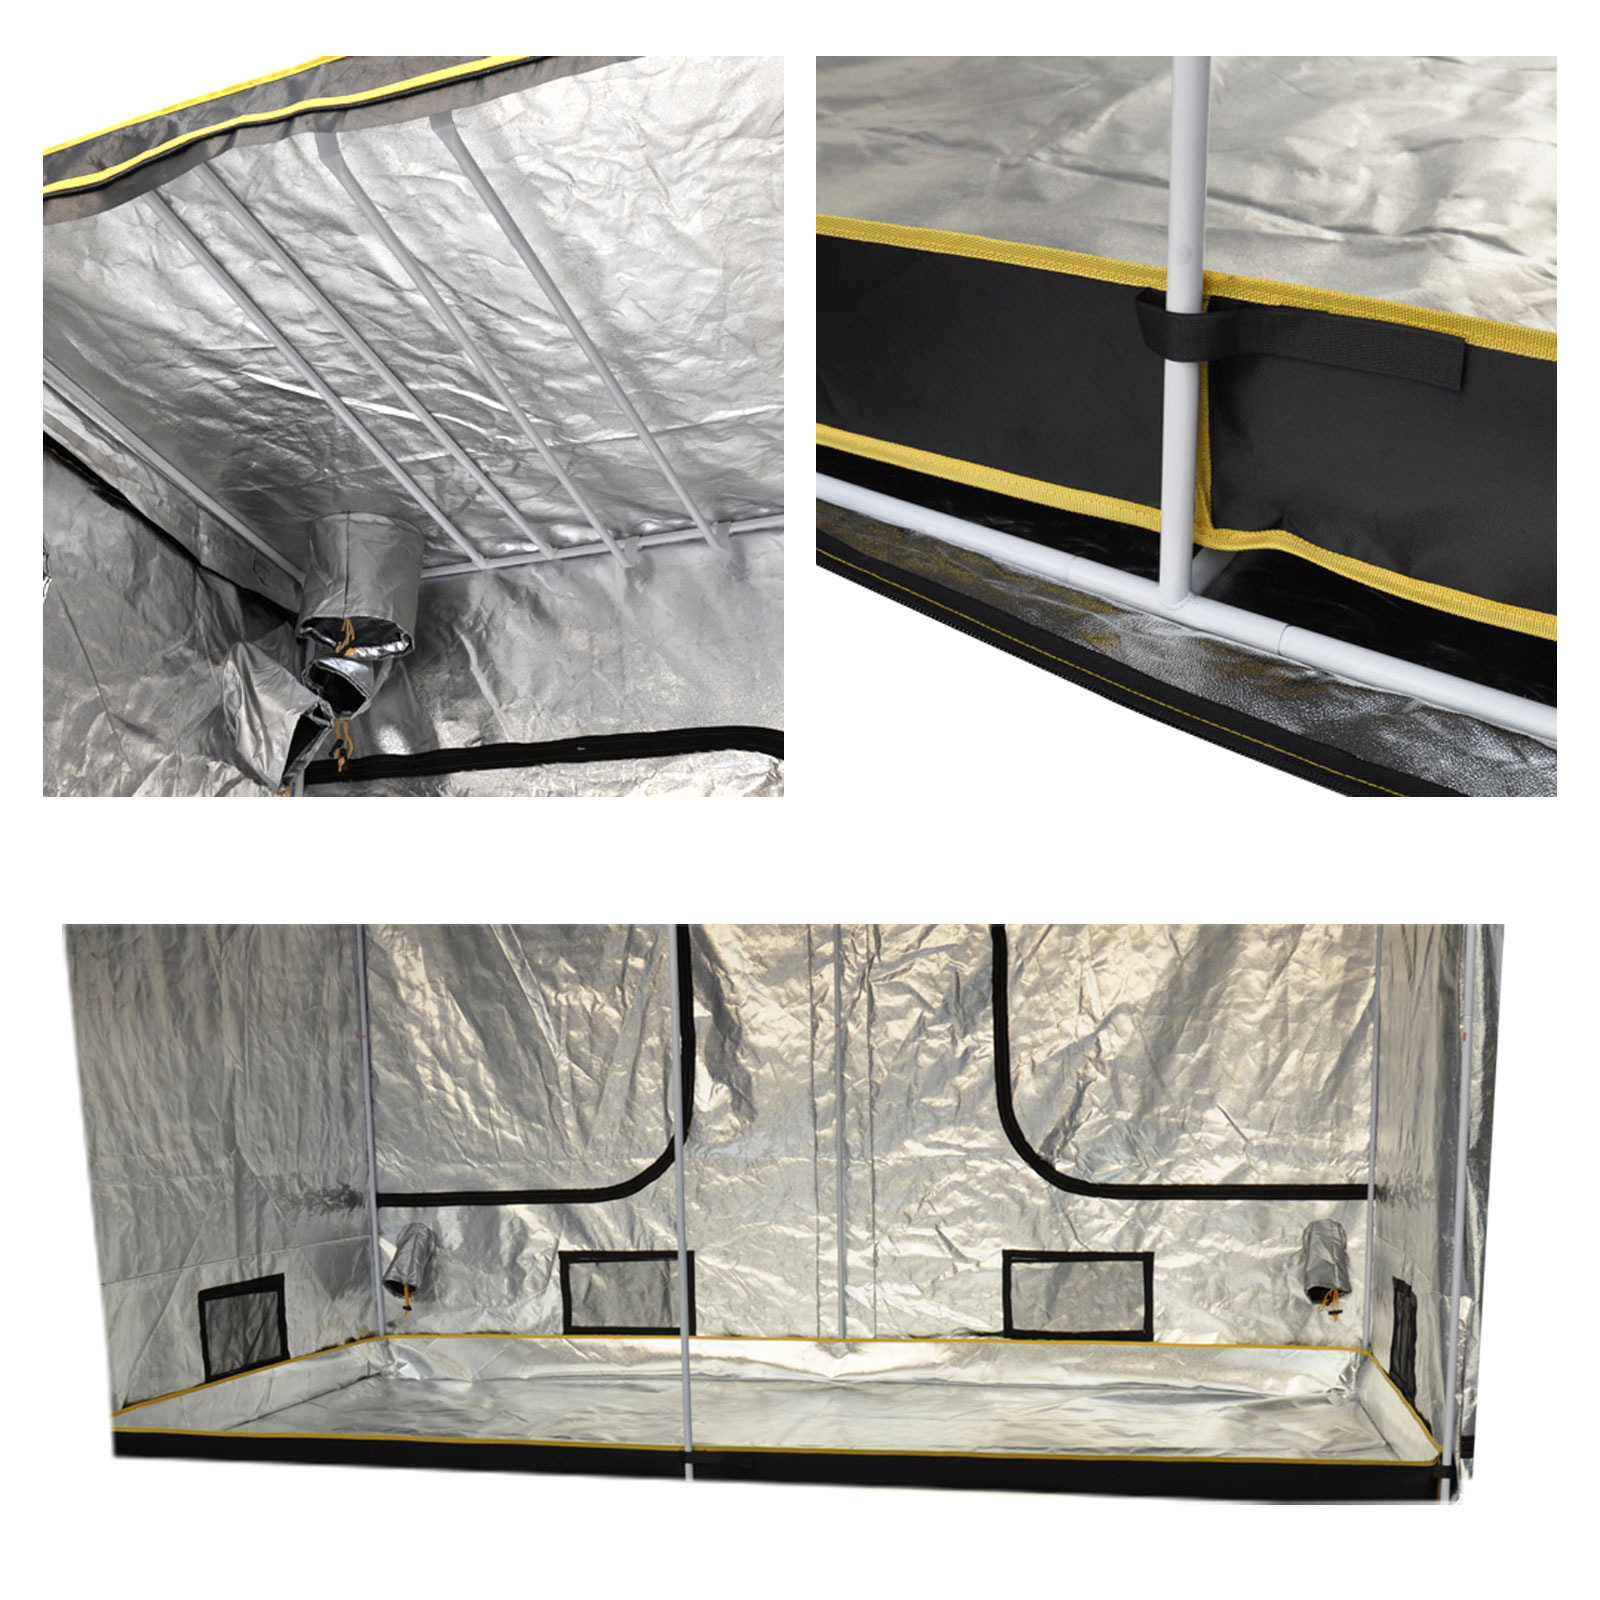 quality hydroponics grow room tent aluminum. Black Bedroom Furniture Sets. Home Design Ideas